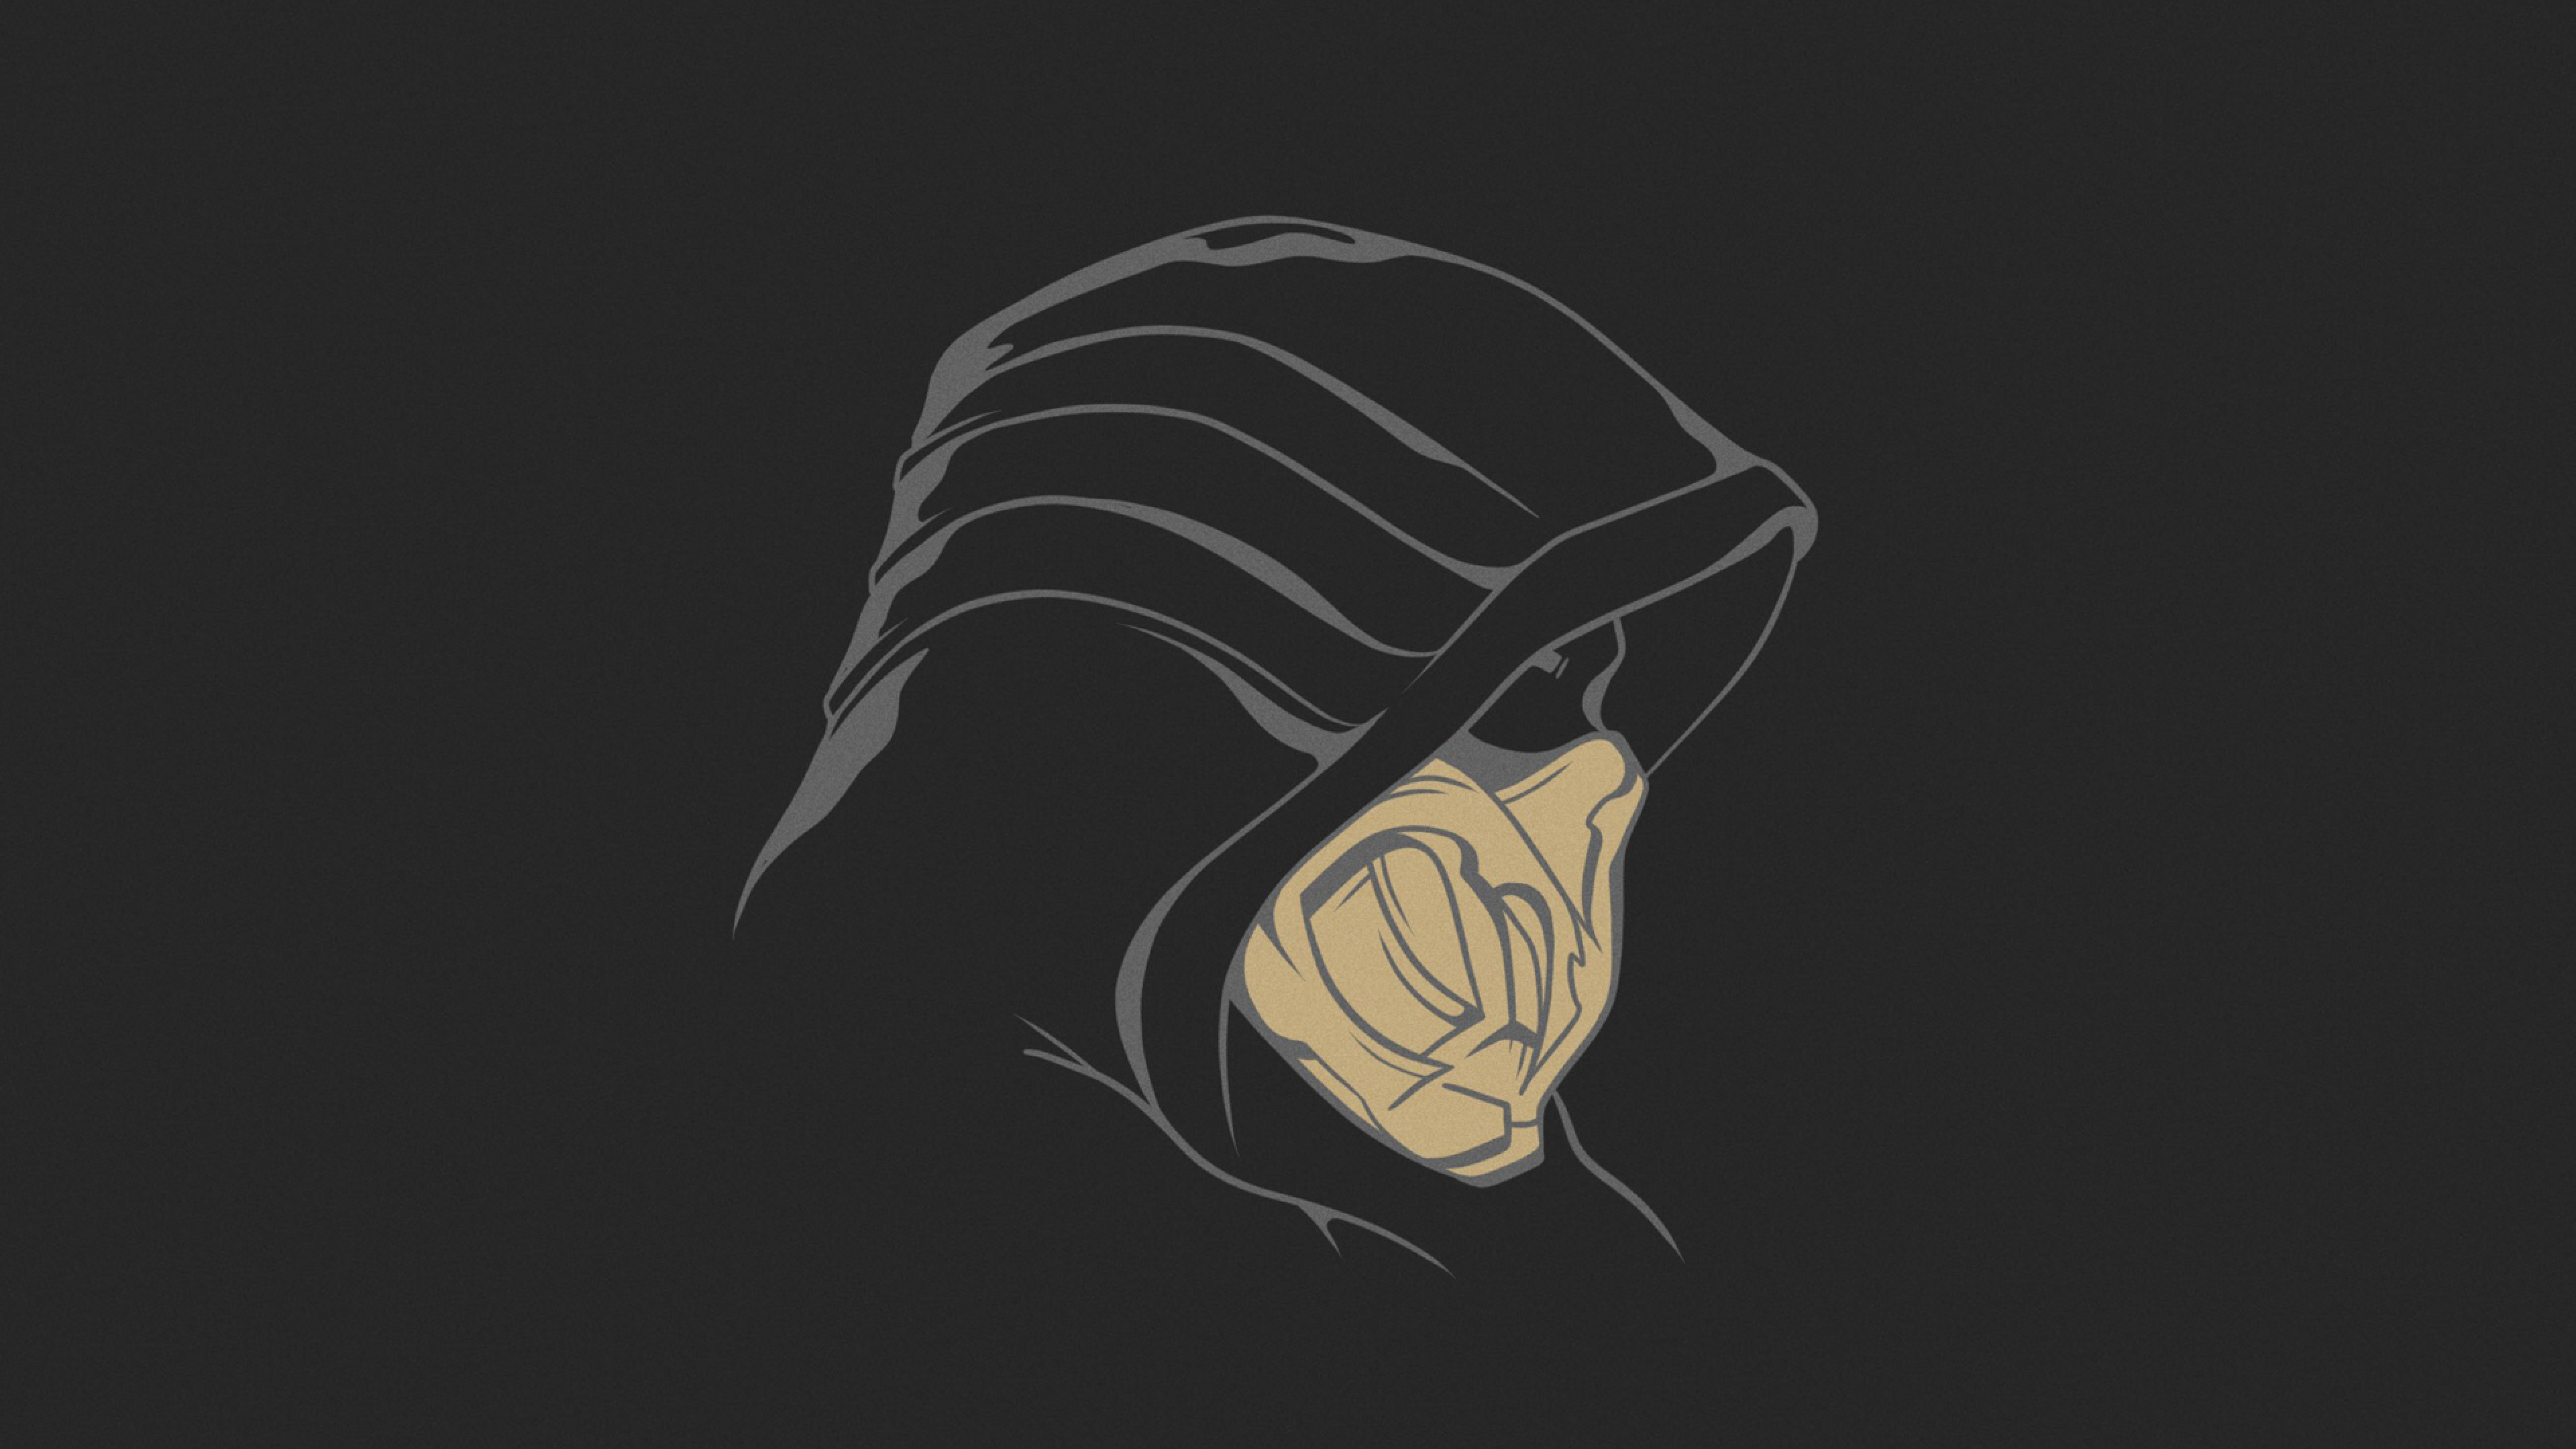 3840x2160 Scorpion Mortal Kombat 4k Wallpaper Hd Minimalist 4k Wallpapers Images Photos And Background